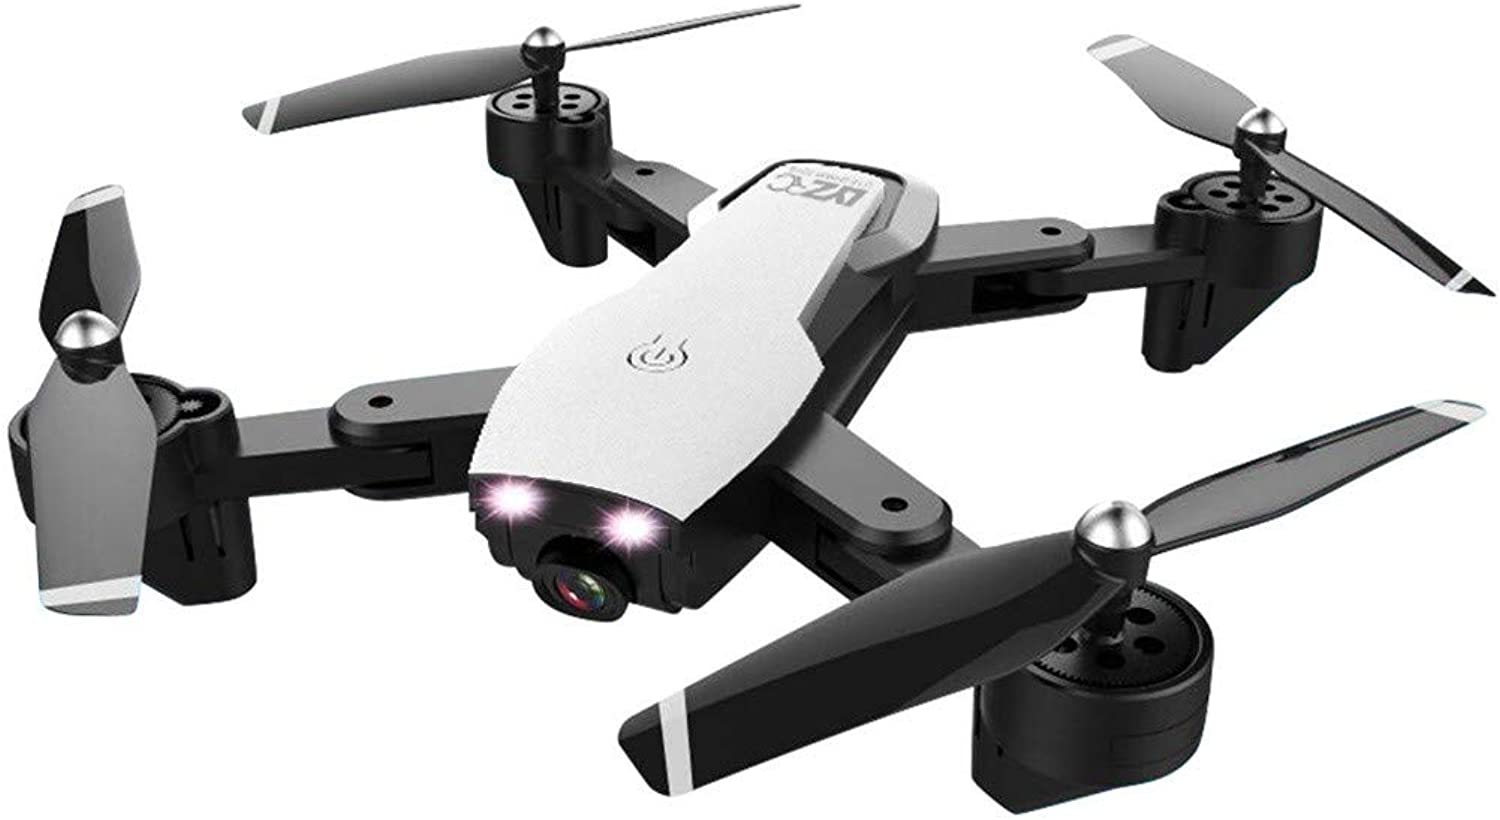 JIANGfu Foldable RC Drone, Dual Camera Optical Flow Remote Control Quadcopter, L107 2.4Ghz 4CH 5MP 1080P Wifi FPV, Birthday Toys Gifts (White)